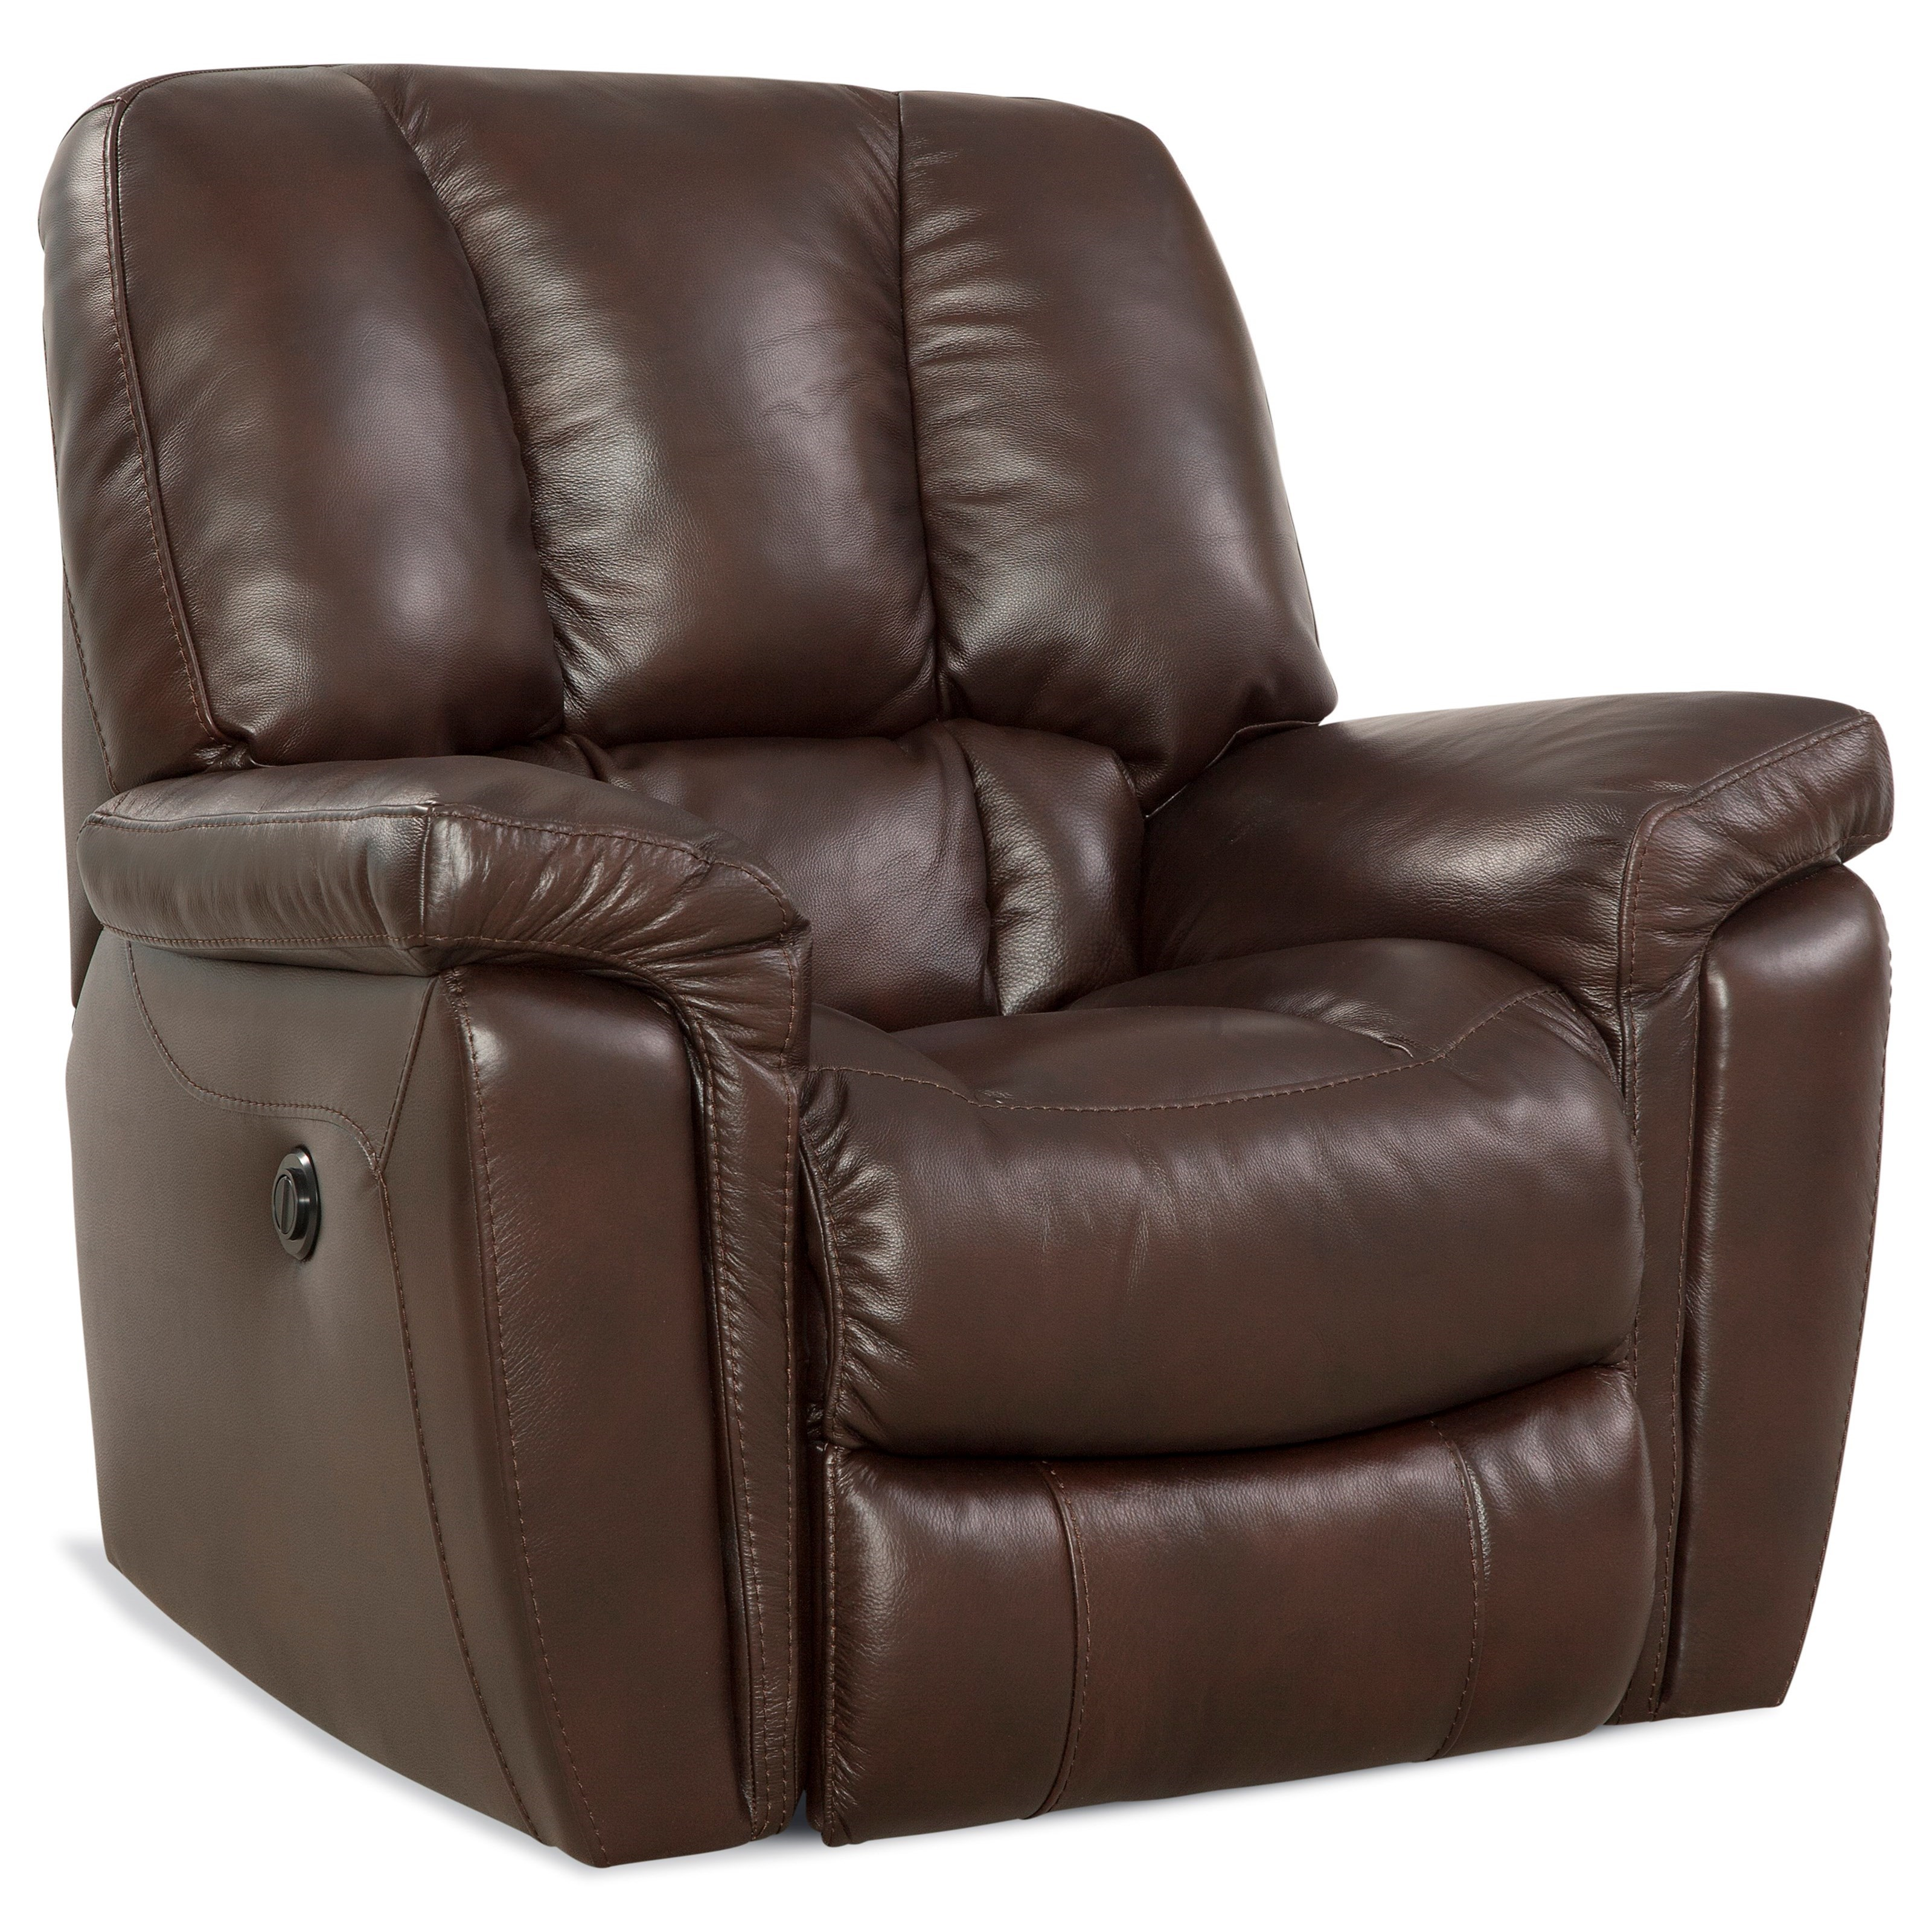 HomeStretch 159 Collection Rocker Recliner - Item Number: 159-91-21